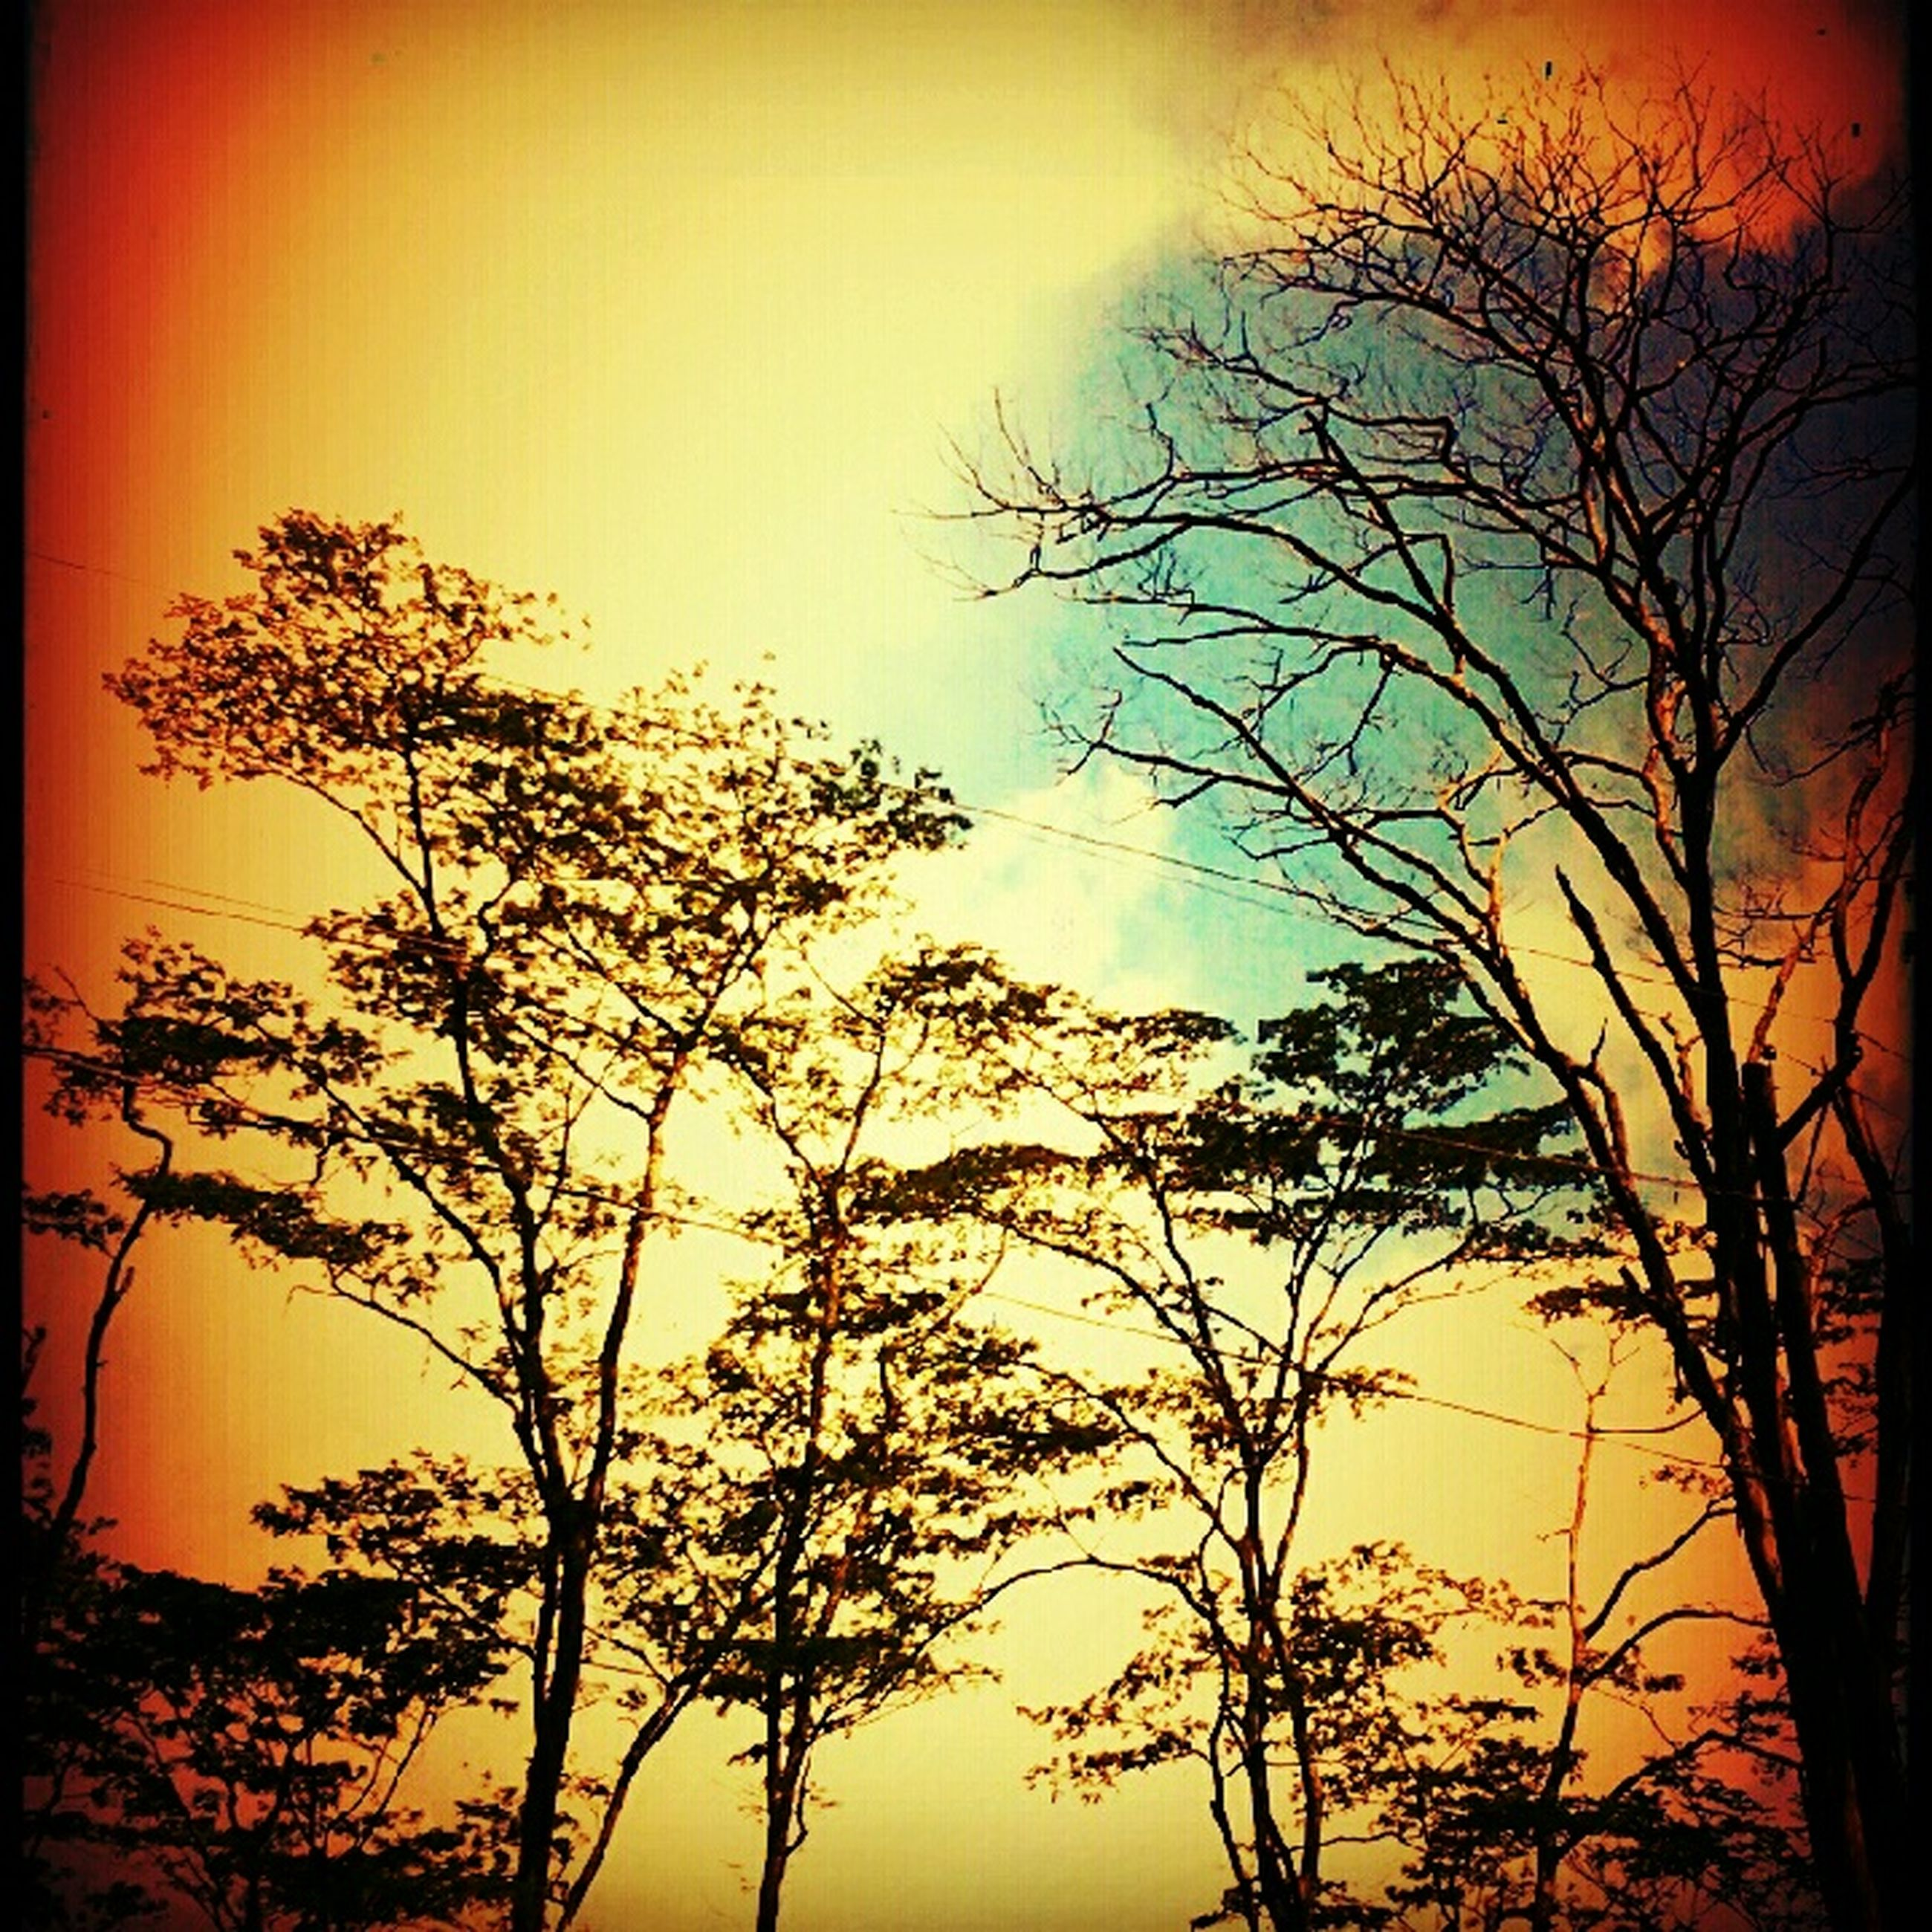 sunset, bare tree, silhouette, tree, branch, tranquility, orange color, scenics, tranquil scene, beauty in nature, sky, transfer print, nature, auto post production filter, idyllic, low angle view, clear sky, dusk, sun, outdoors